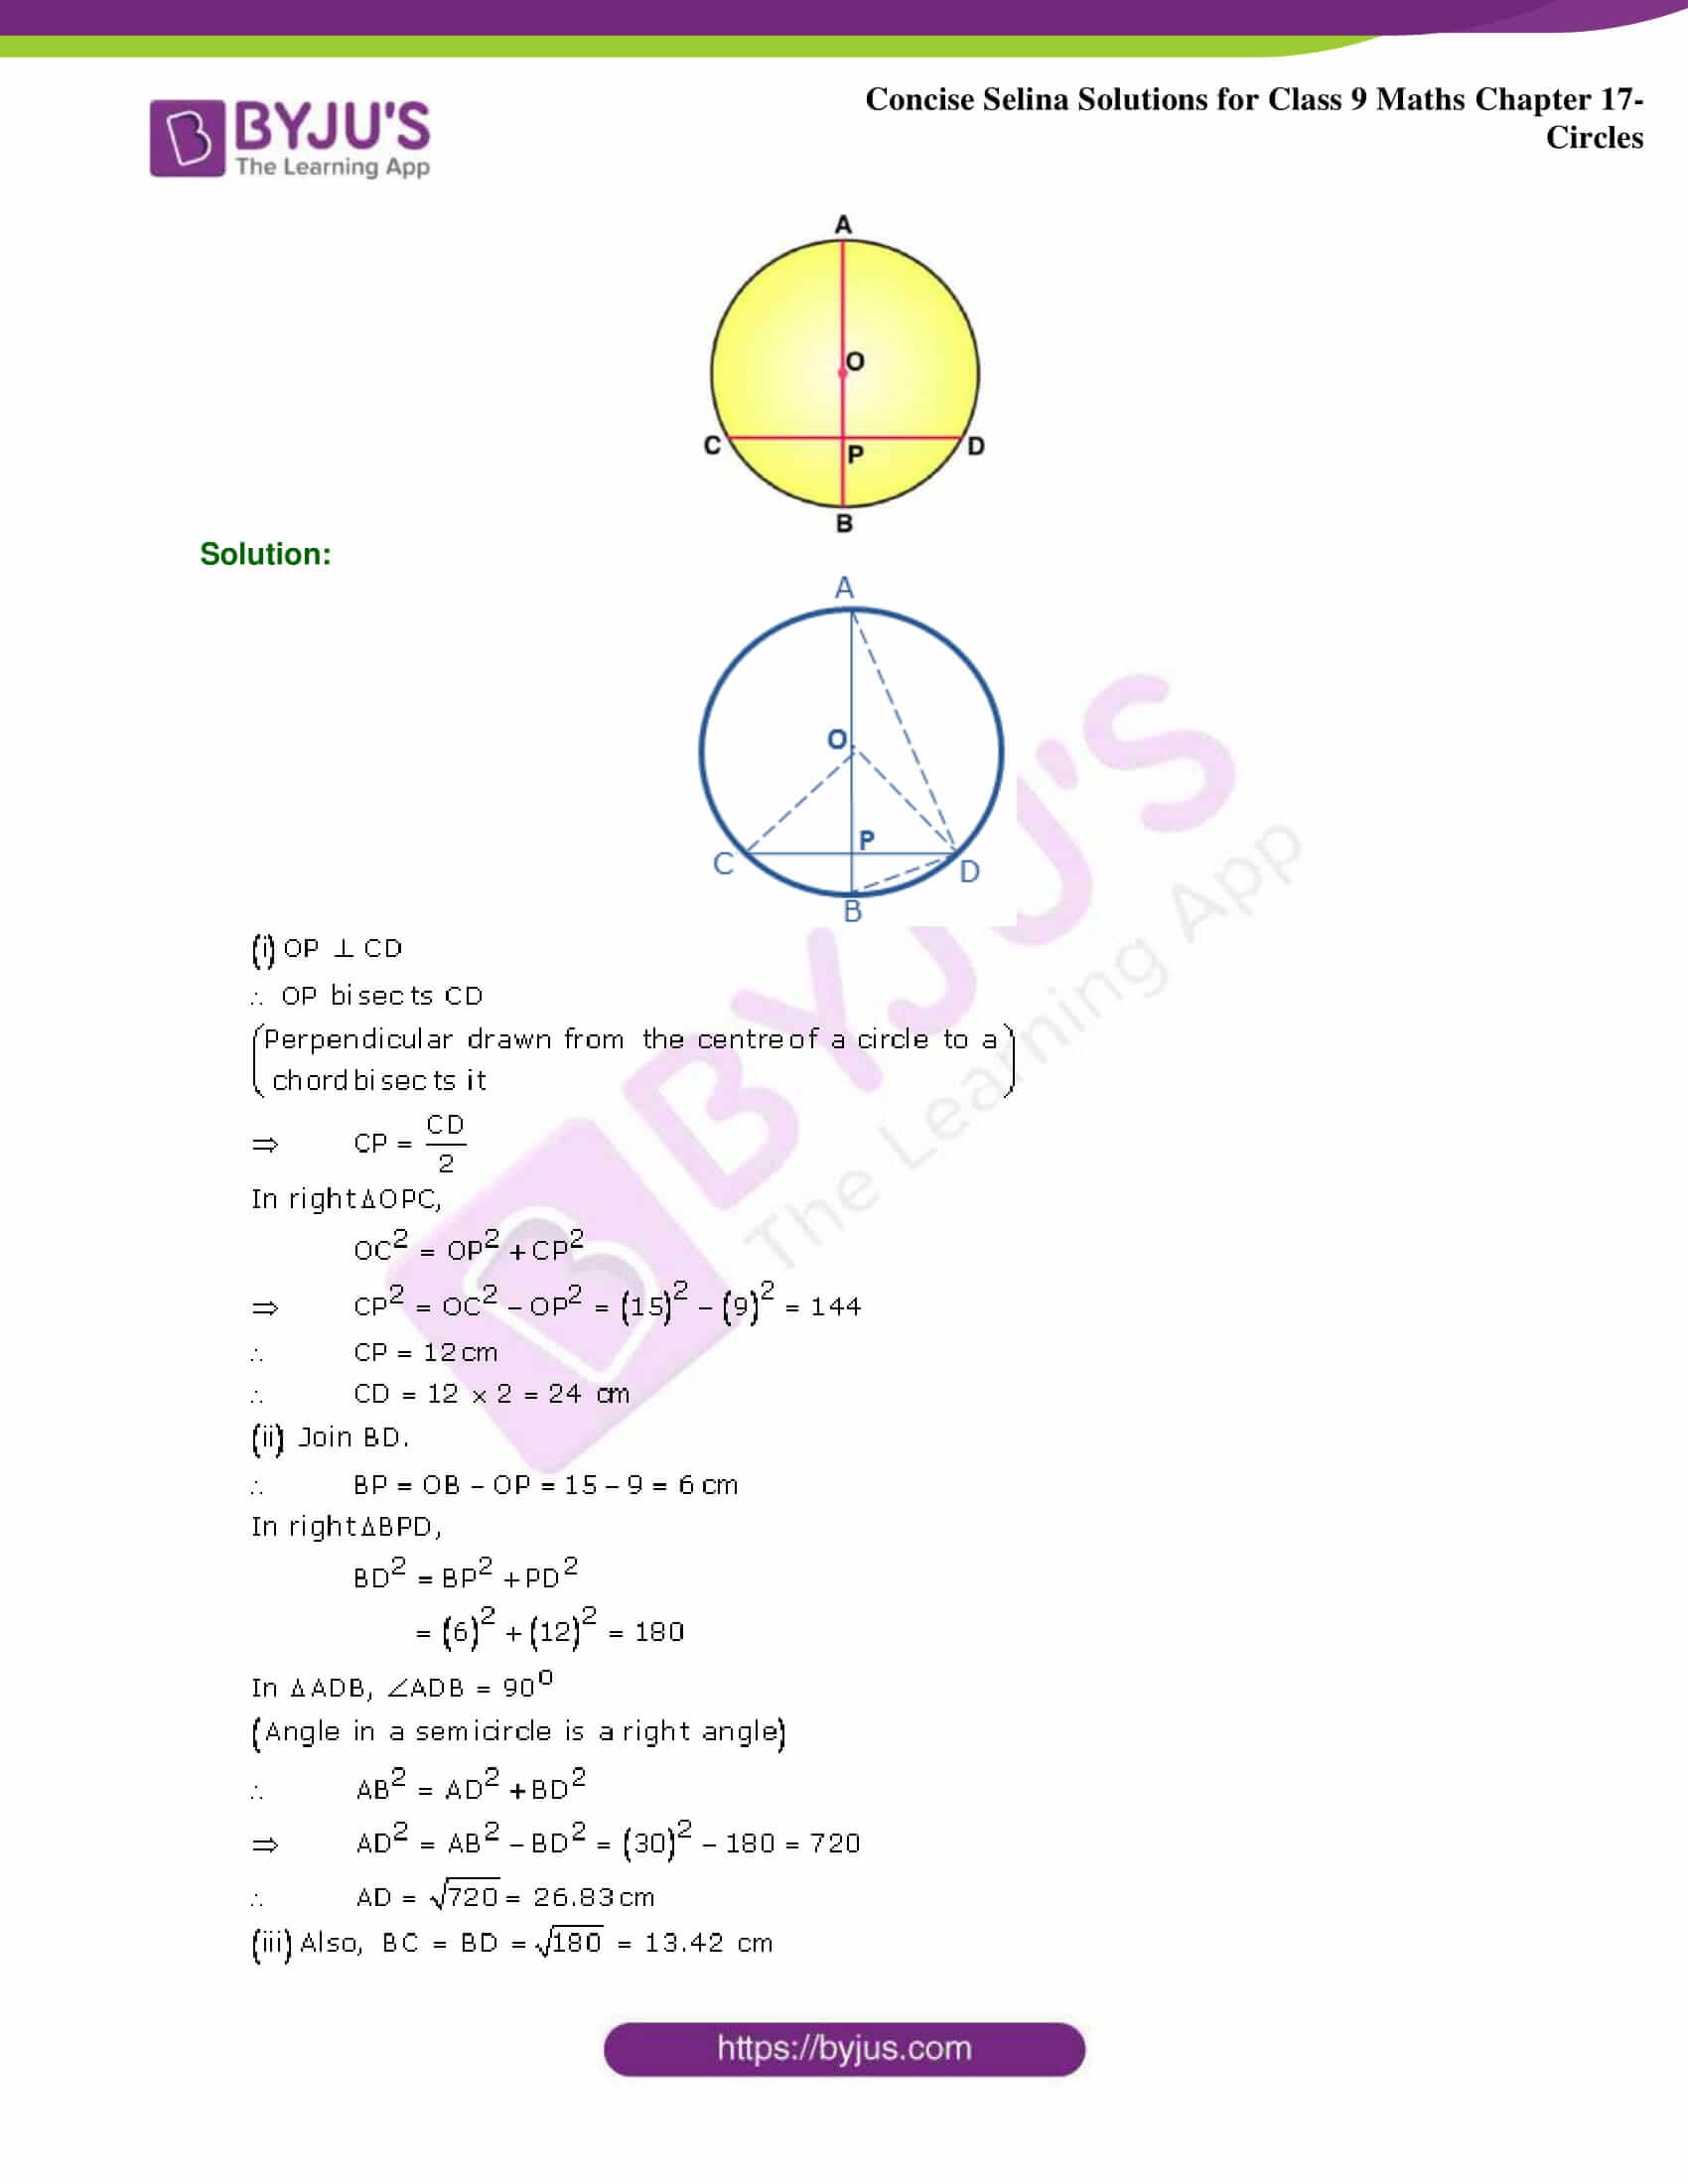 Concise Selina Solutions Class 9 Maths Chapter 17 Circles part 06